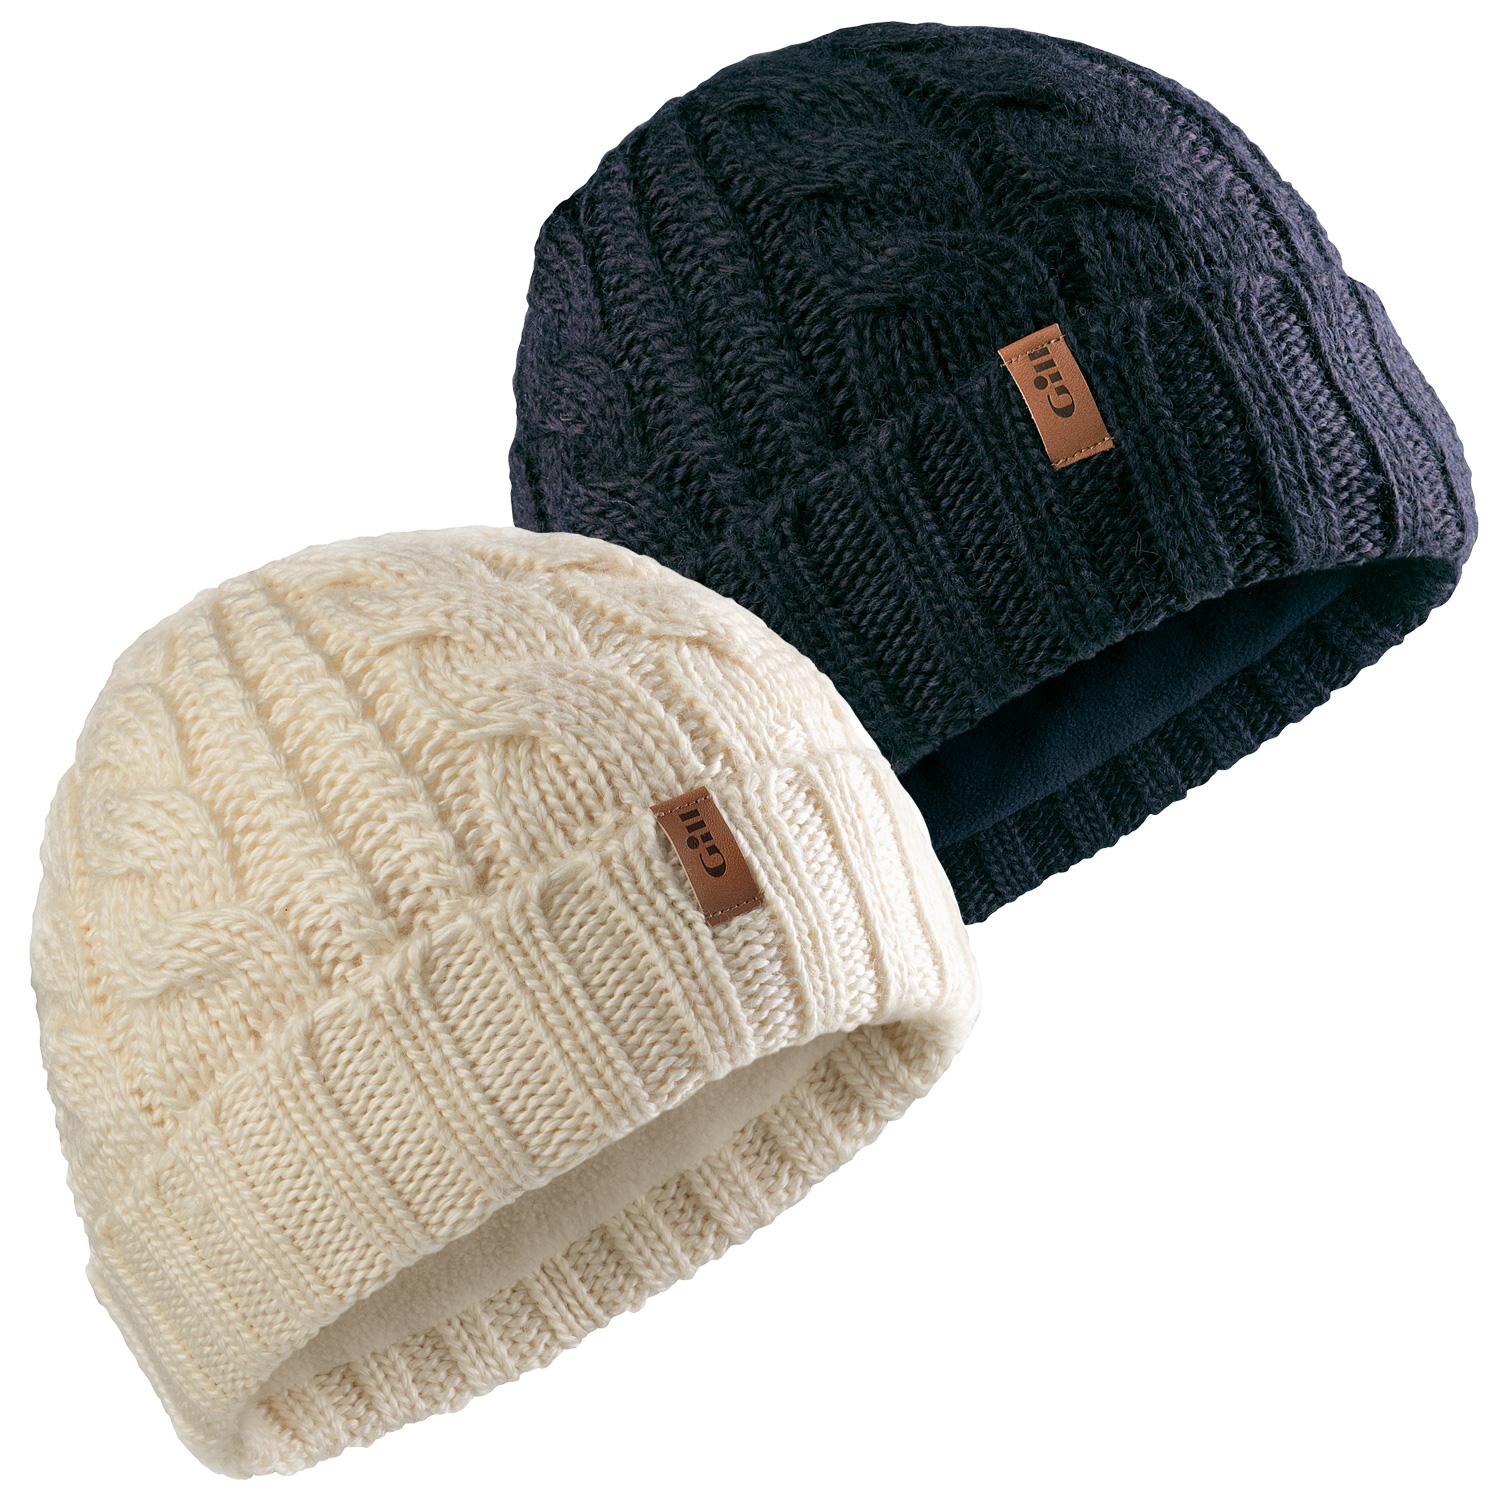 8f181fdd5e2 A cosy knitted beanie in a soft wool and acrylic yarn with a classic cable  knit design. It also has a warm and soft inner thermal headlband.